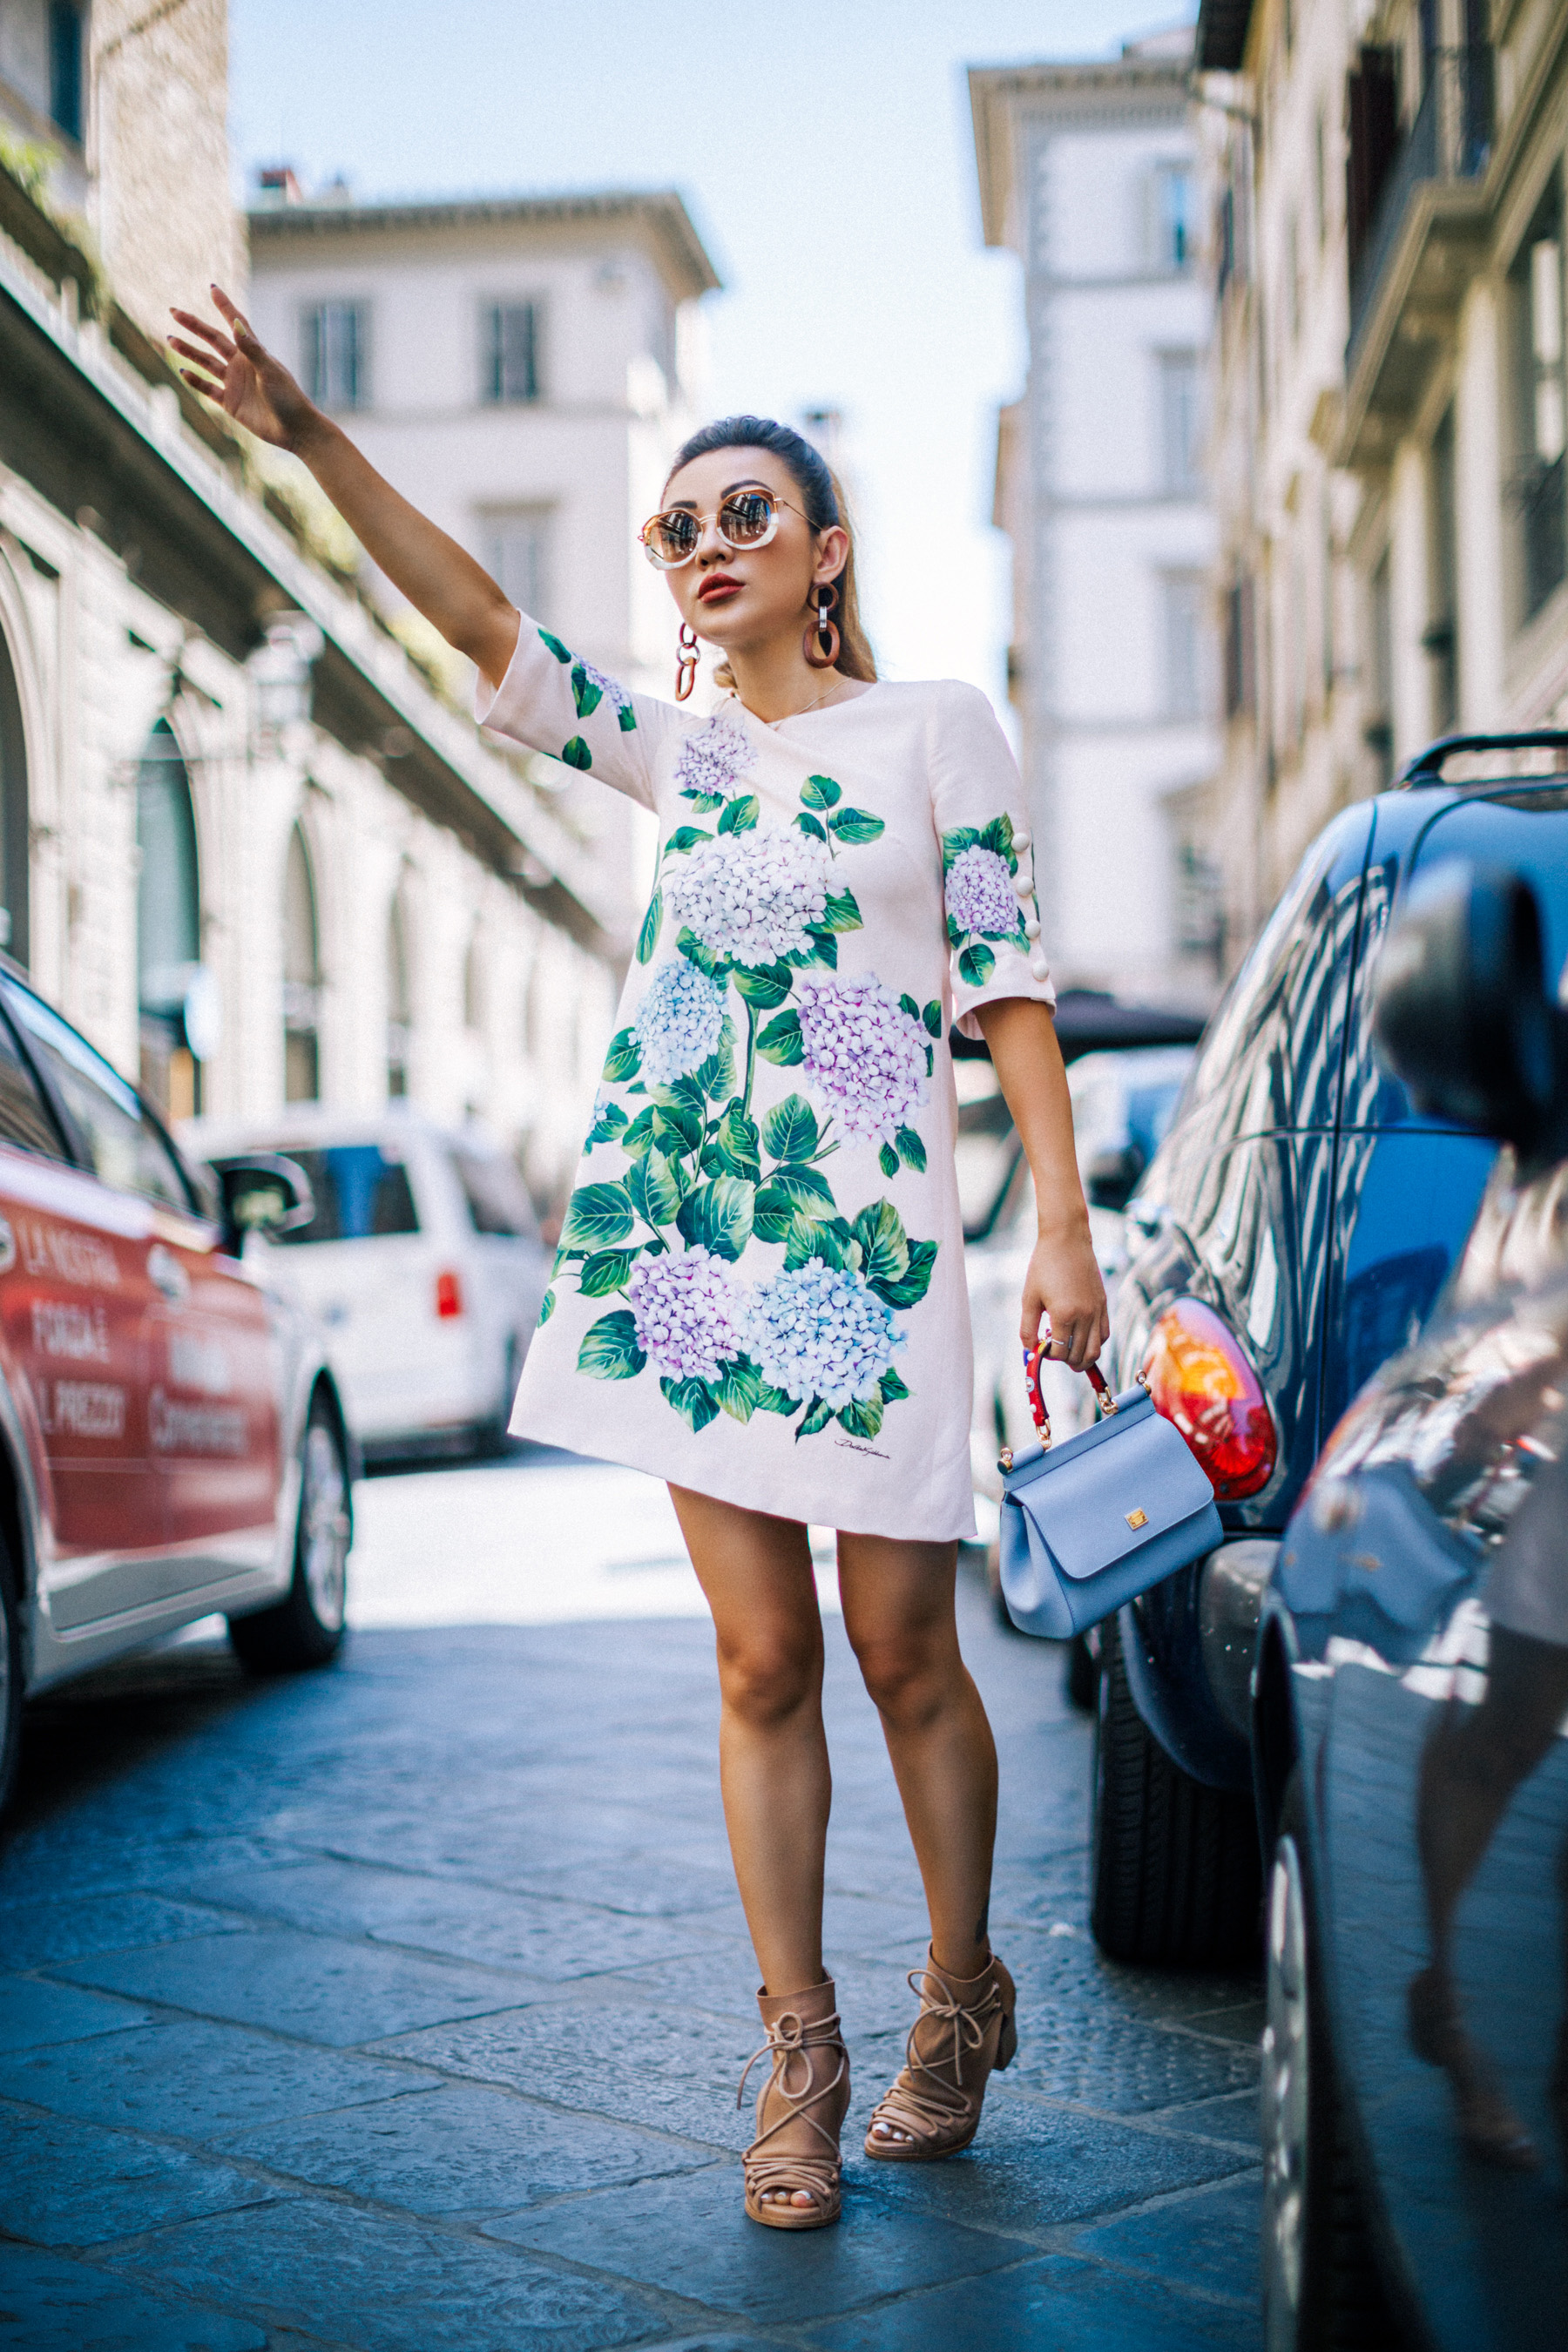 Dolce & Gabbana Hydrangea Shift Dress // NotJessFashion.com